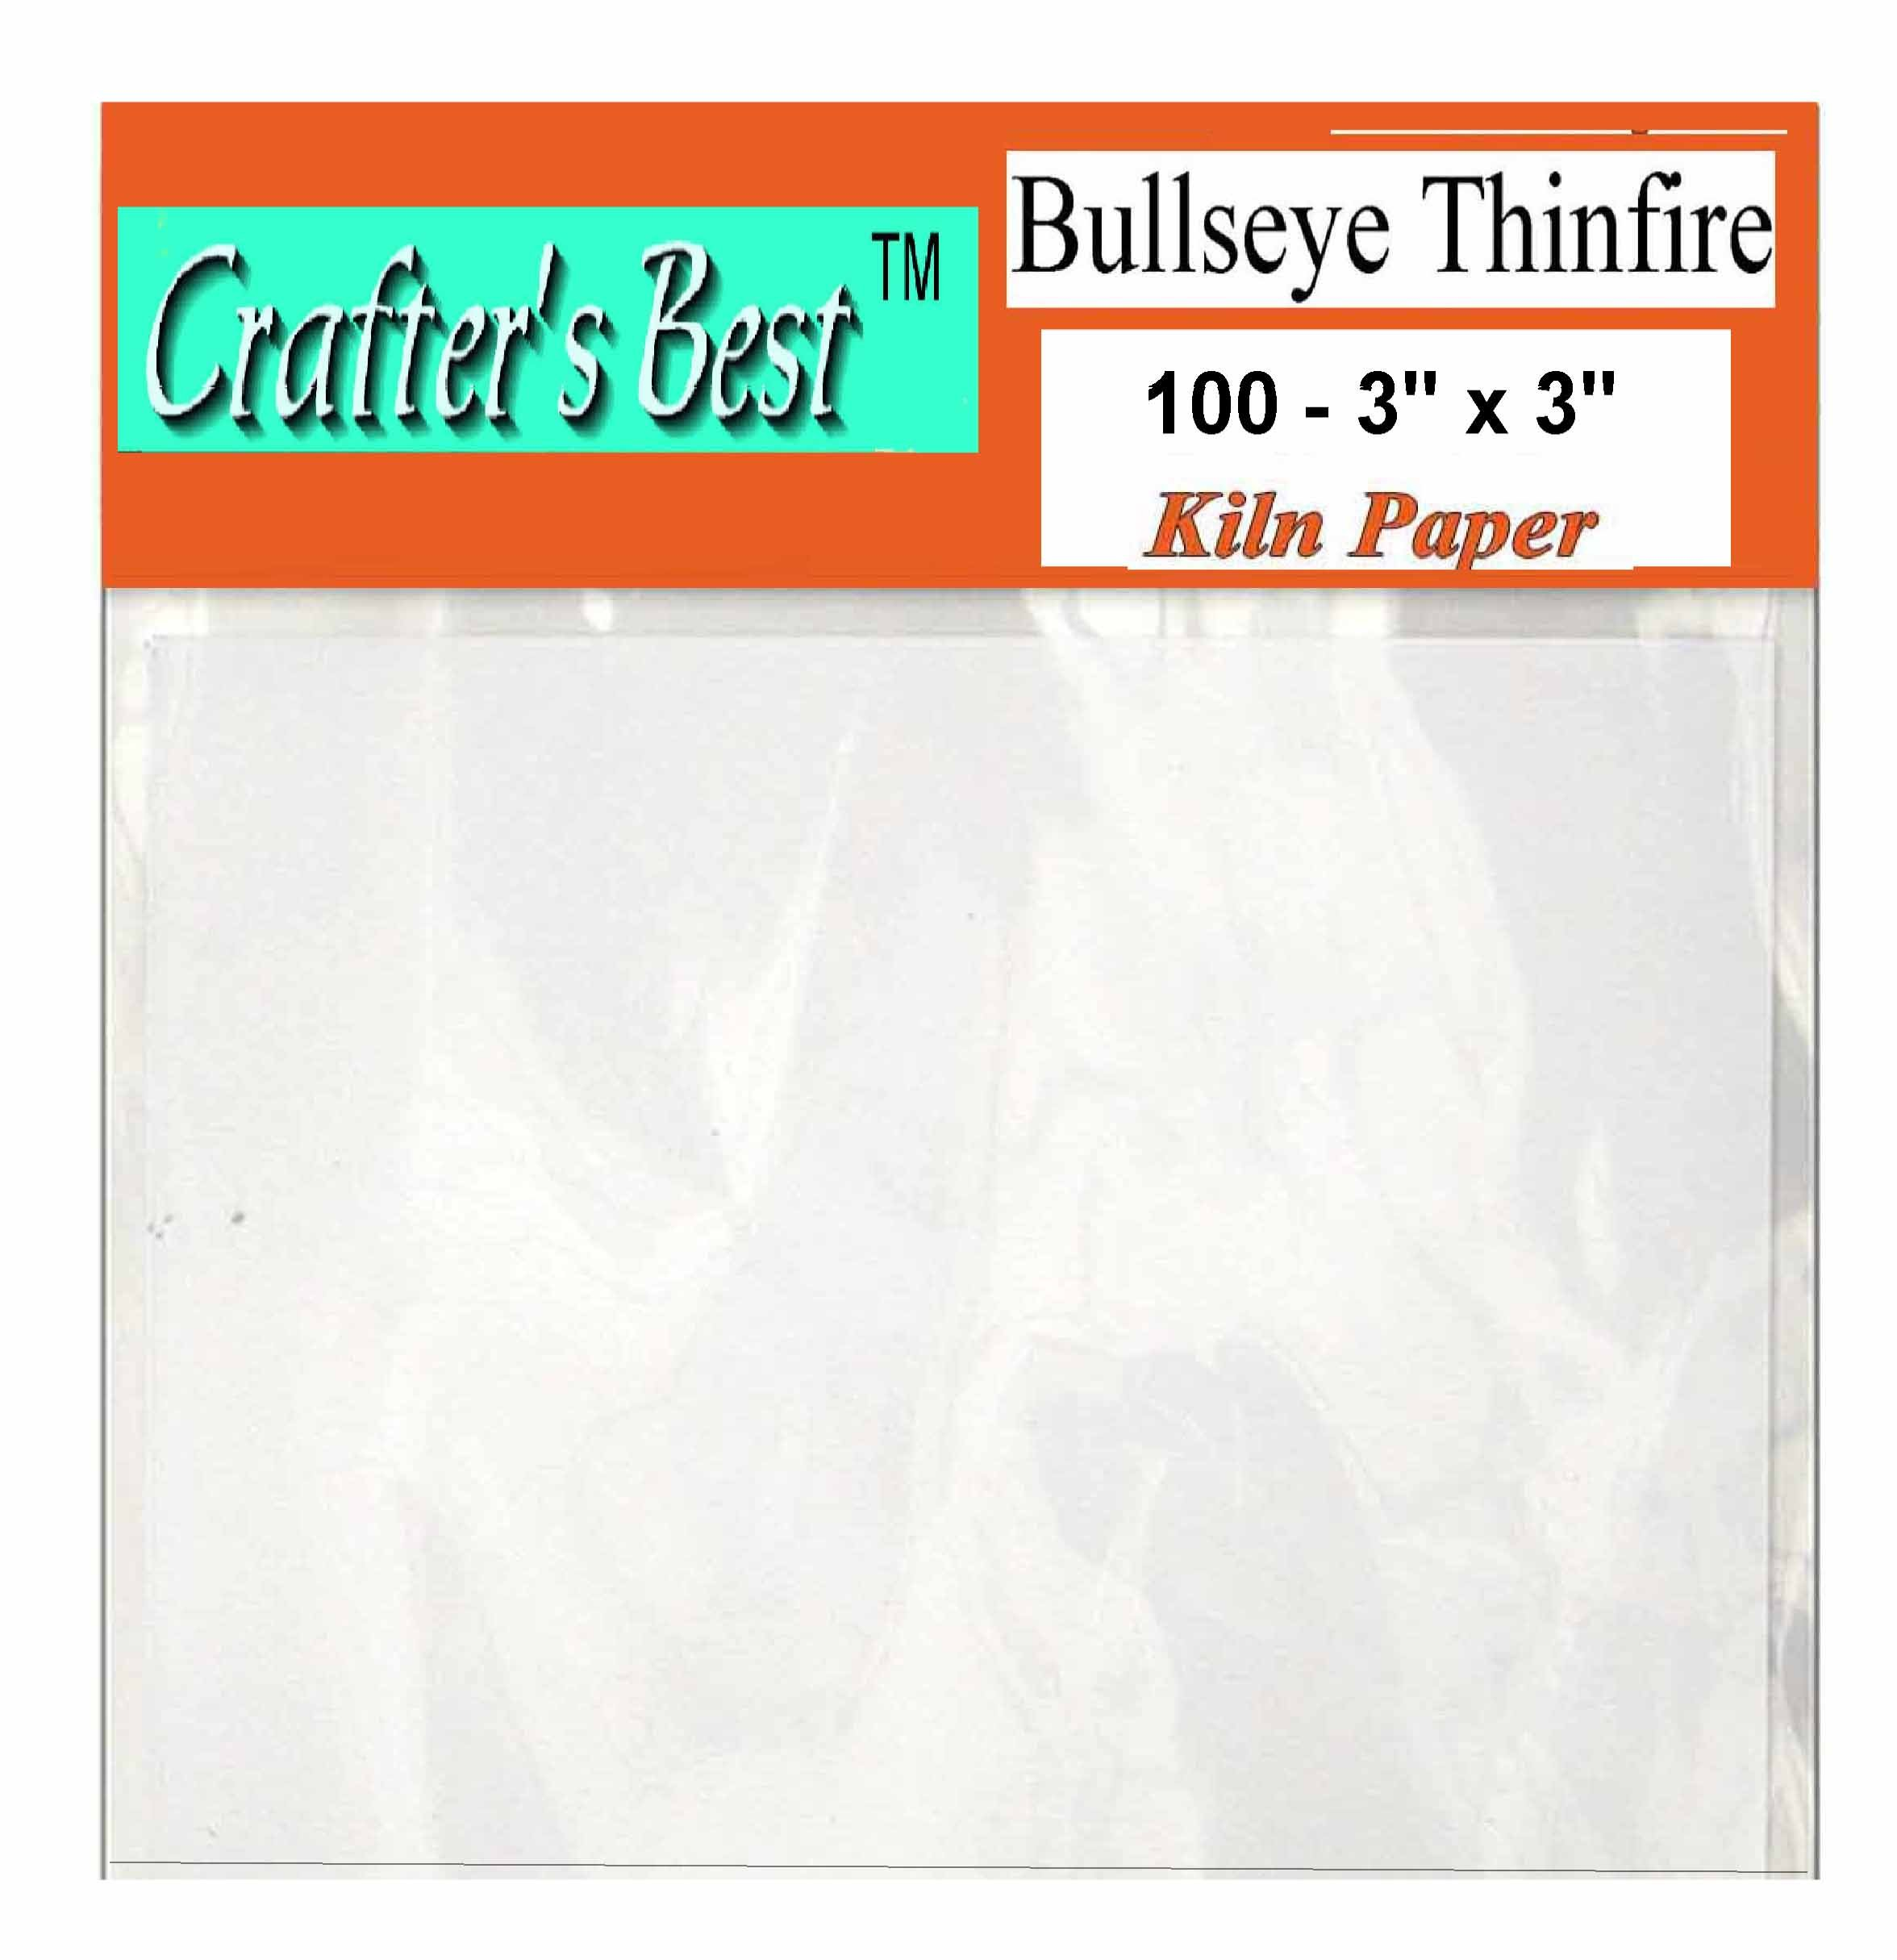 Crafter's Best 100 - Bullseye Thinfire Kiln Shelf Paper 3'' X 3'' Great for Microwave Kilns by iDichroic